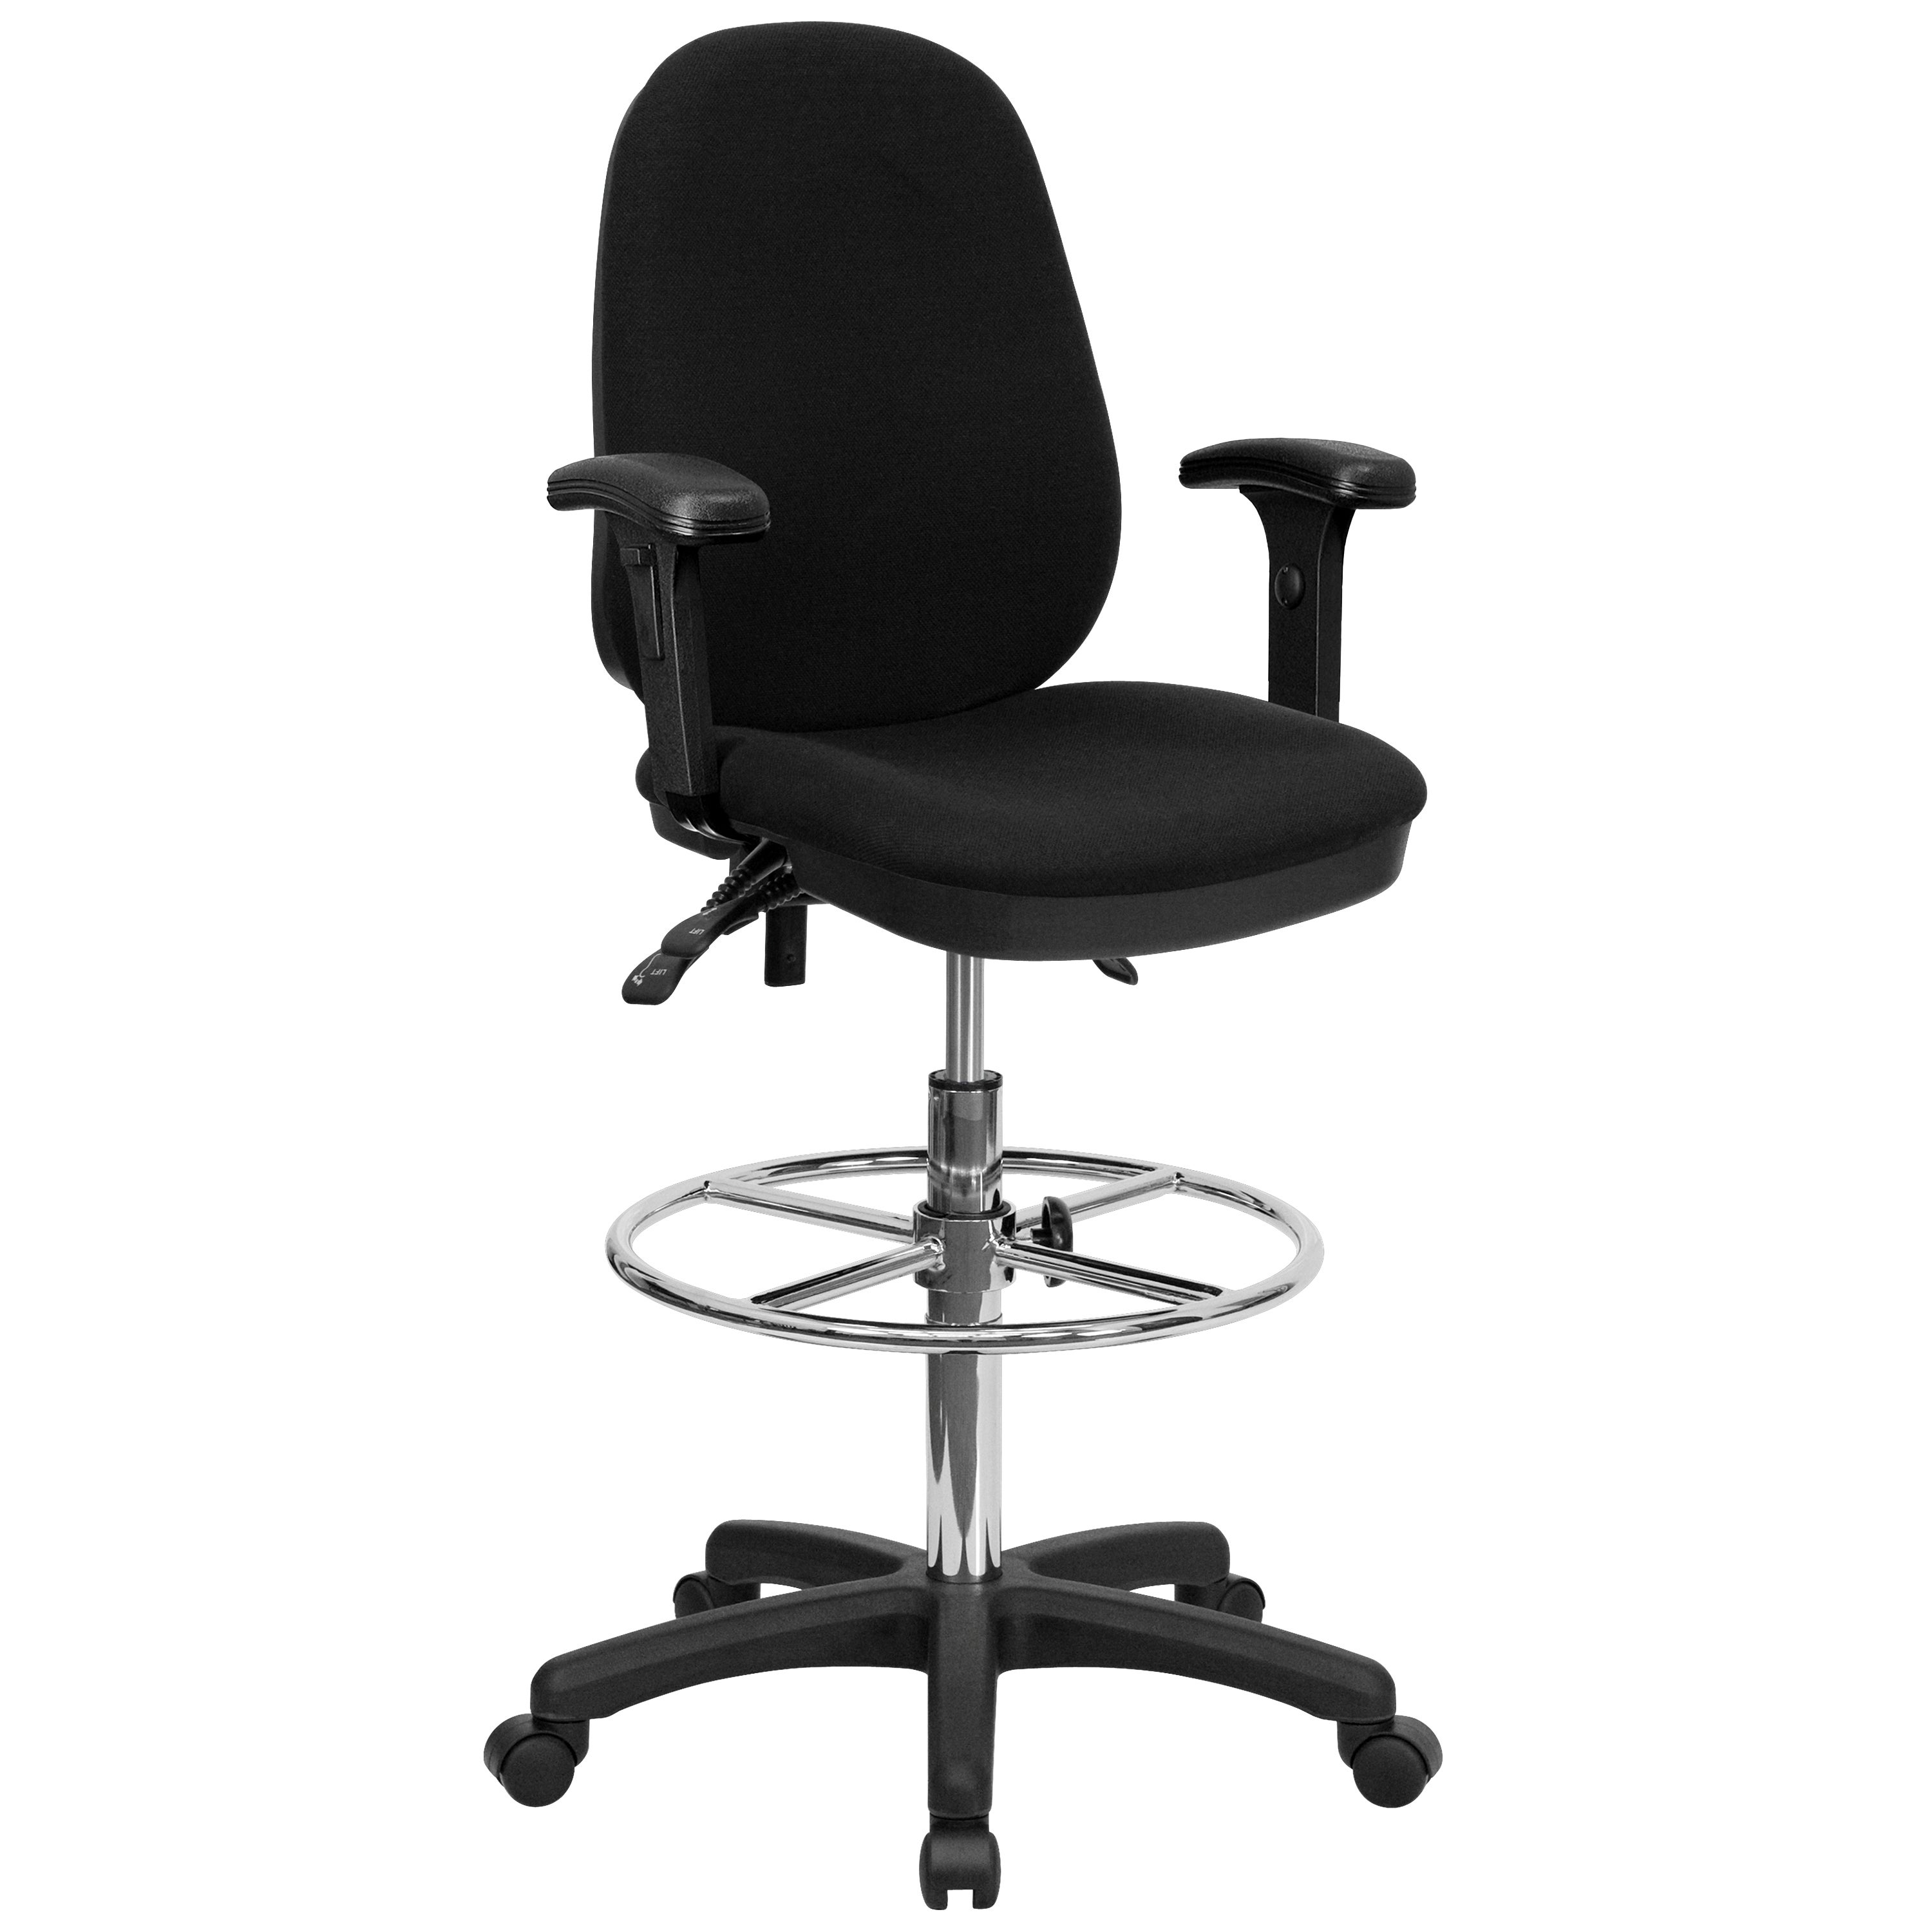 office drafting chair. Black Fabric Multifunctional Office Drafting Chair - Free Shipping Today  Overstock 20420508 Office Drafting Chair E